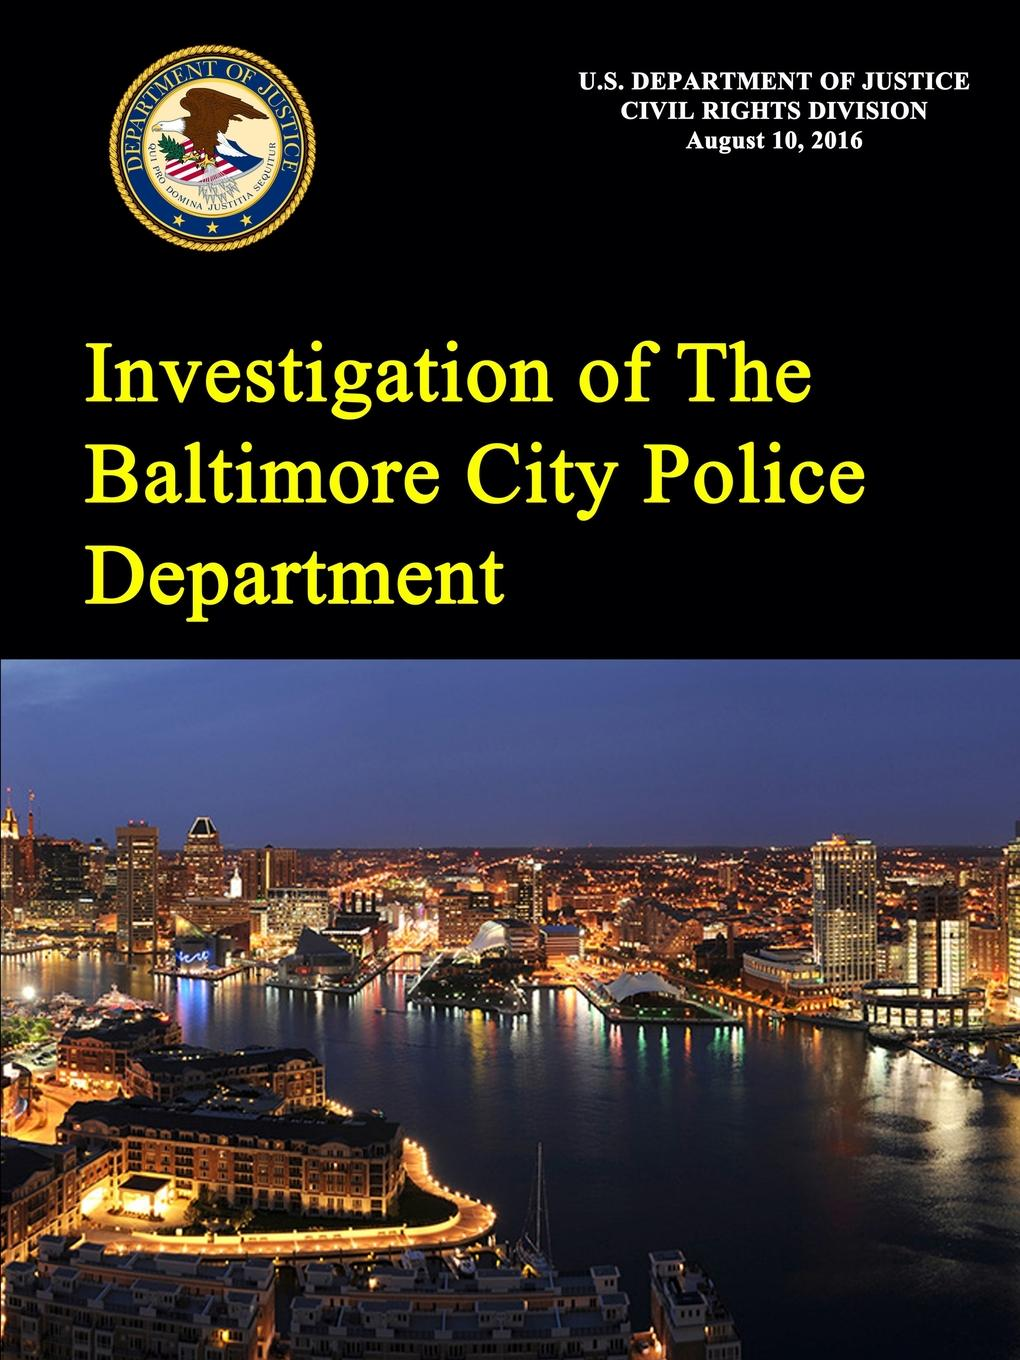 U.S. Department of Justice Investigation of The Baltimore City Police Department jason hess k w kirkland investigation of davis swamp